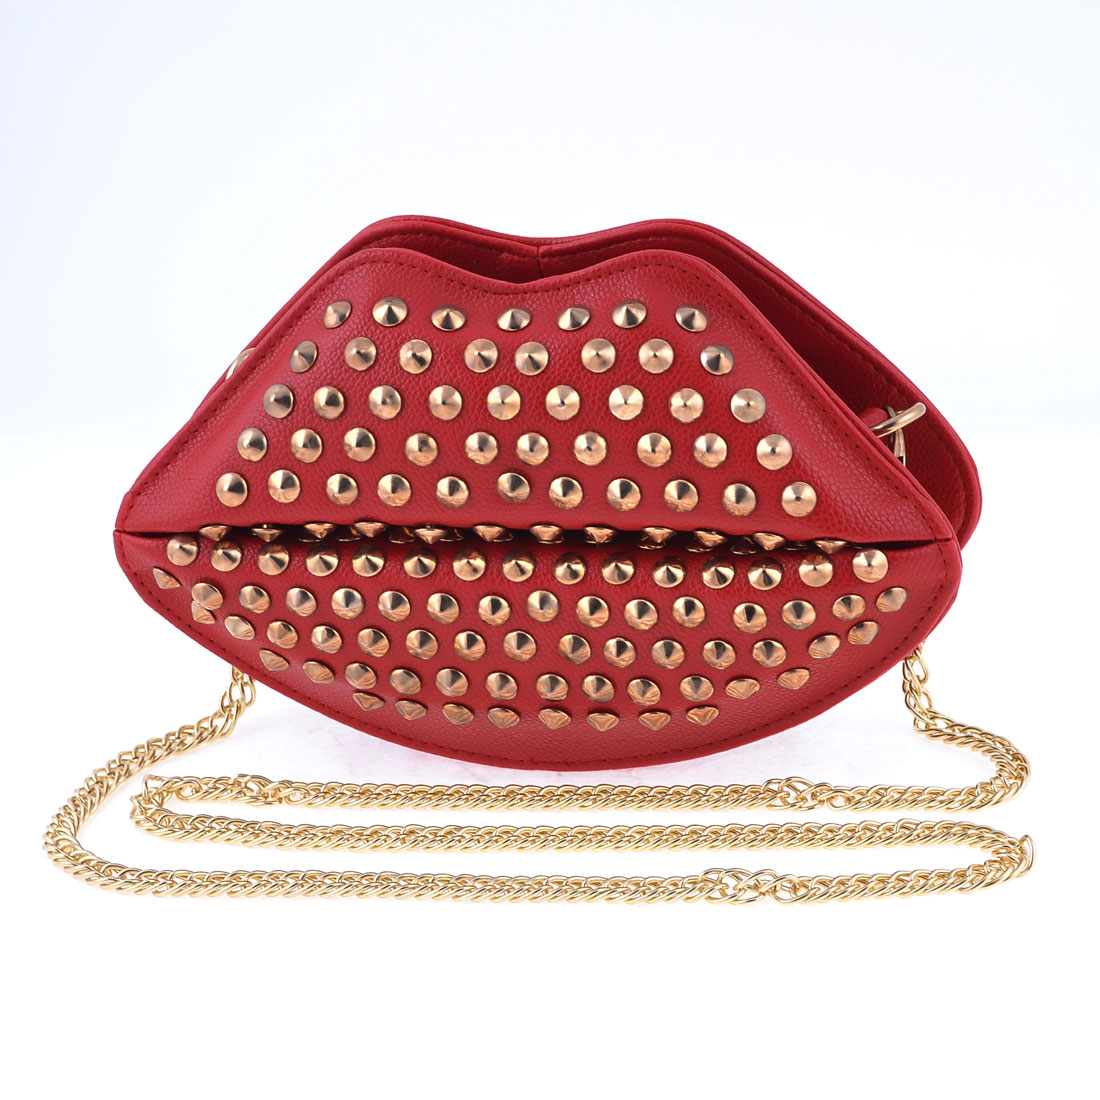 Woman Stud Decor Litchi Faux Leather Red Lip Shaped Shoulder Bag Handbag